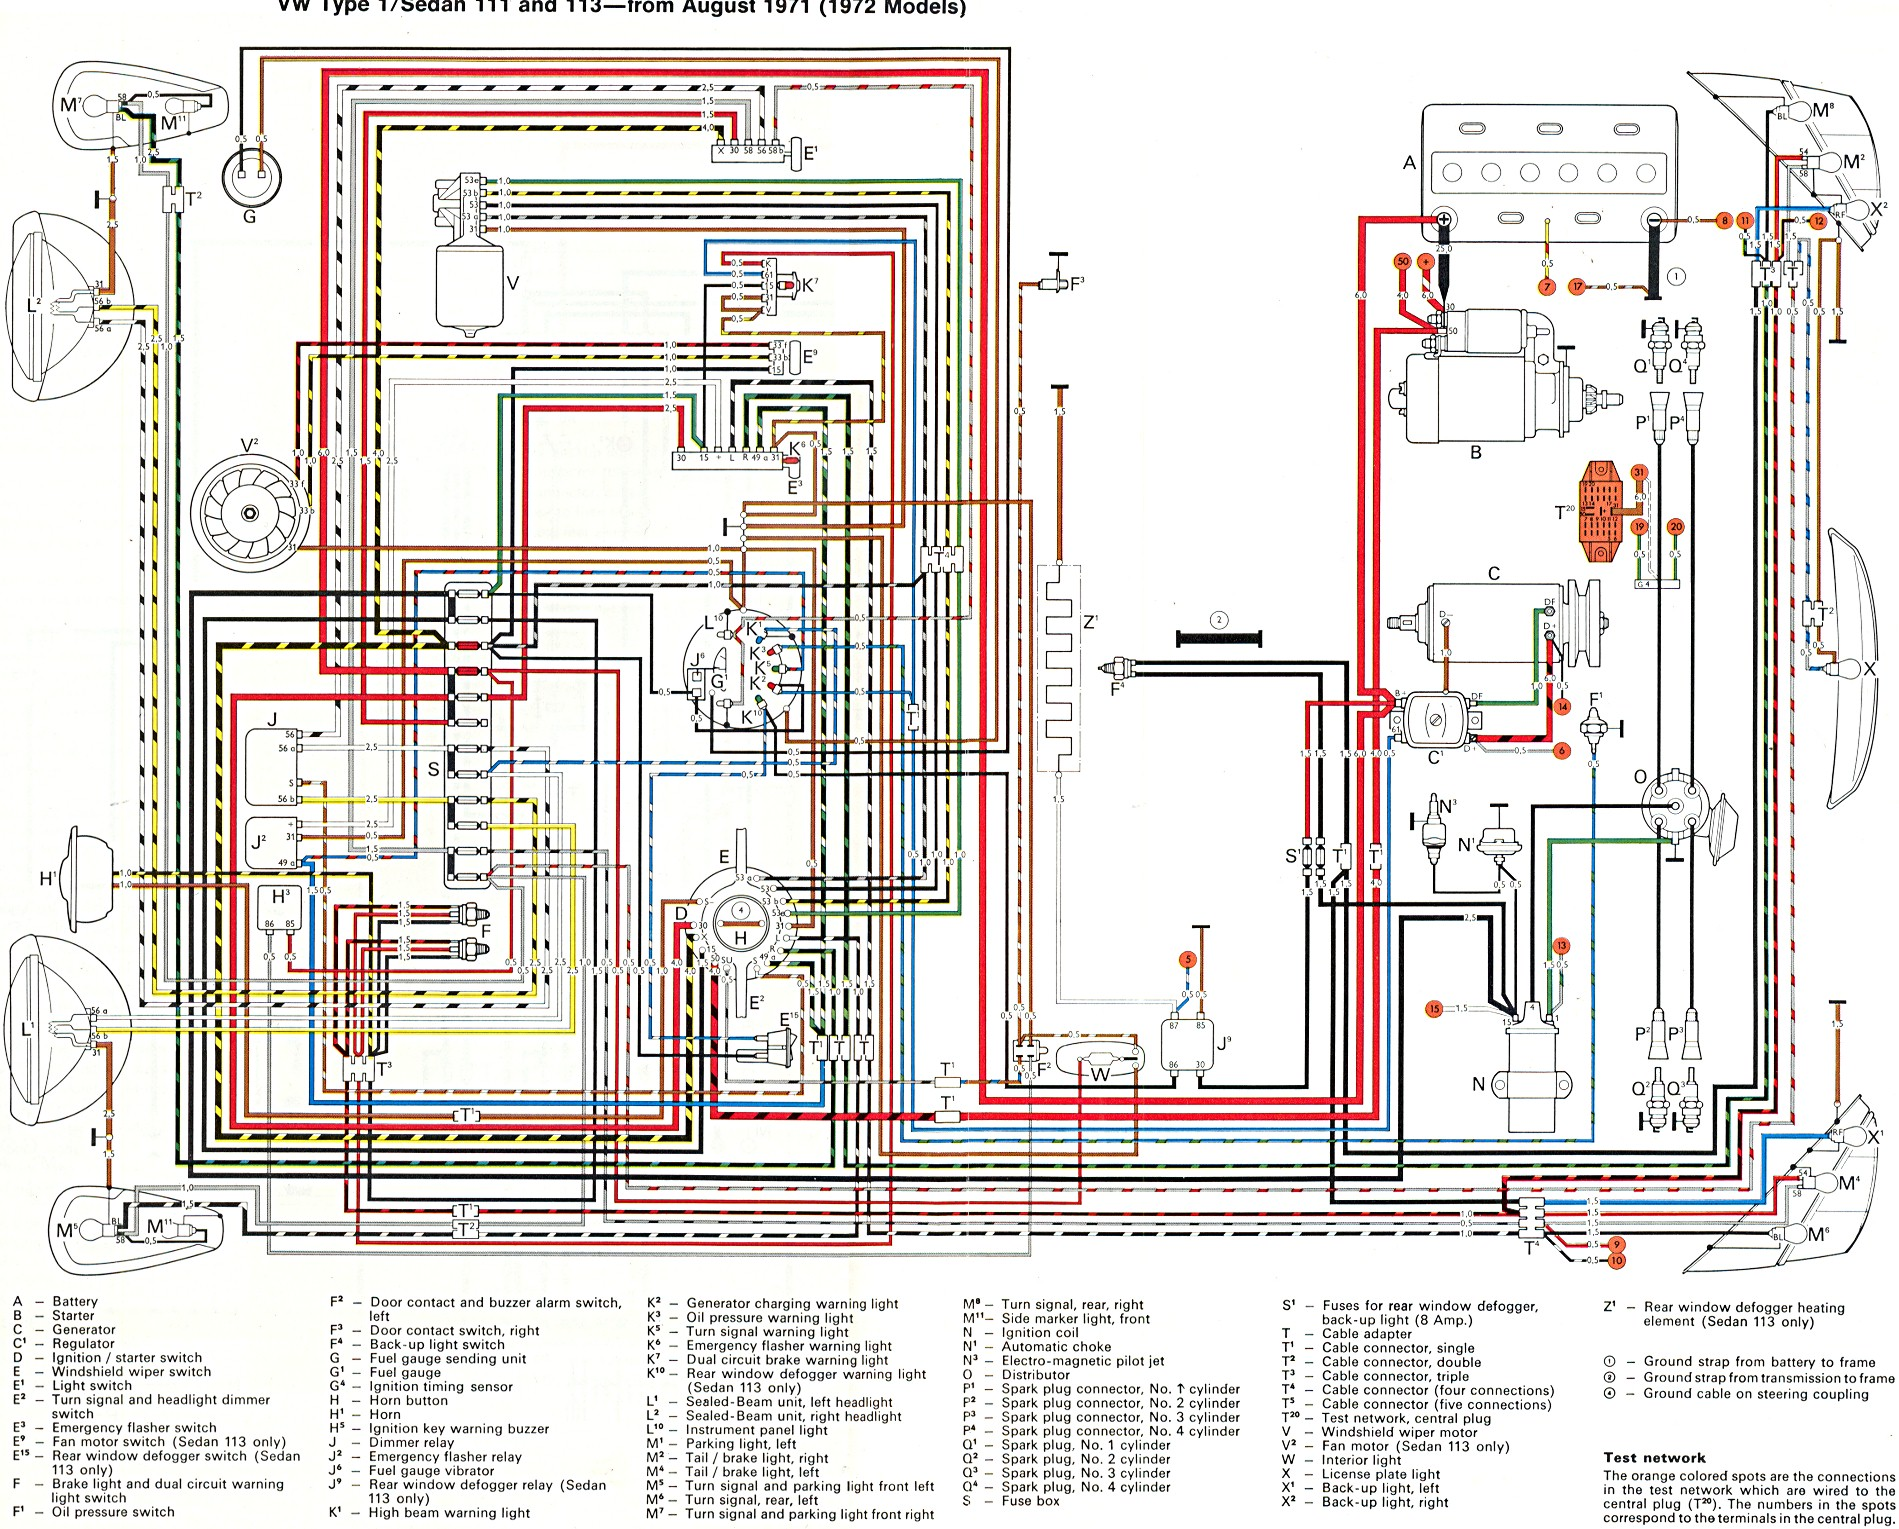 Vw Wire Diagram Radio Wiring Diagram Vw Golf Radio Wiring Diagrams